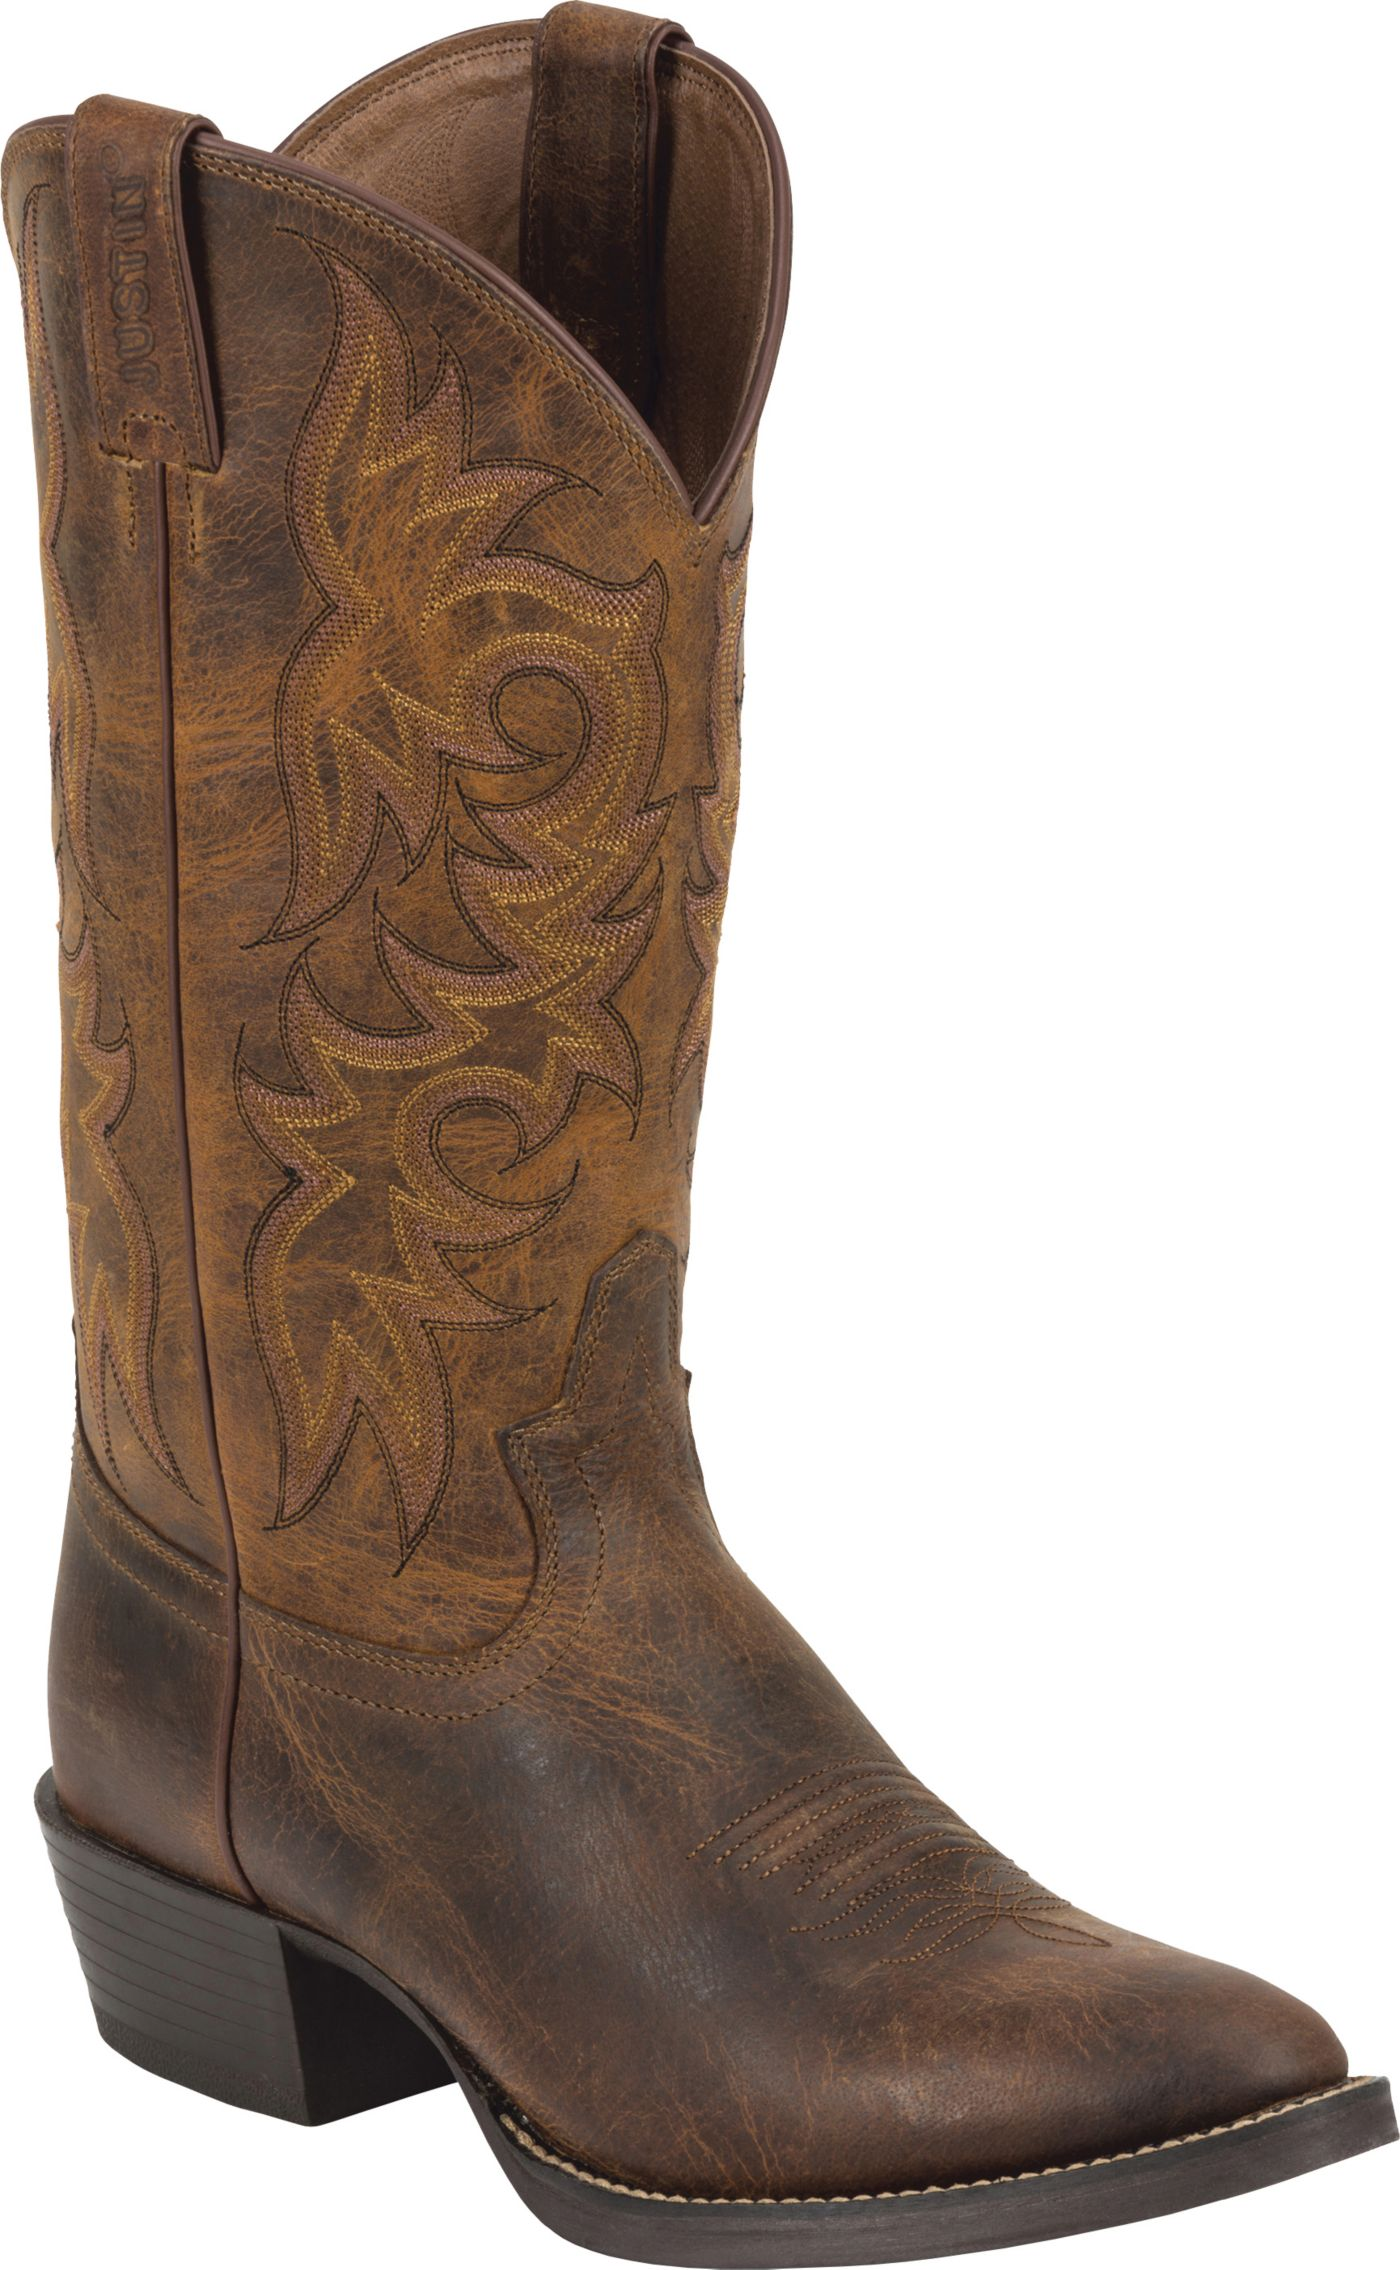 Justin Men's Rugged Cowhide Western Boots